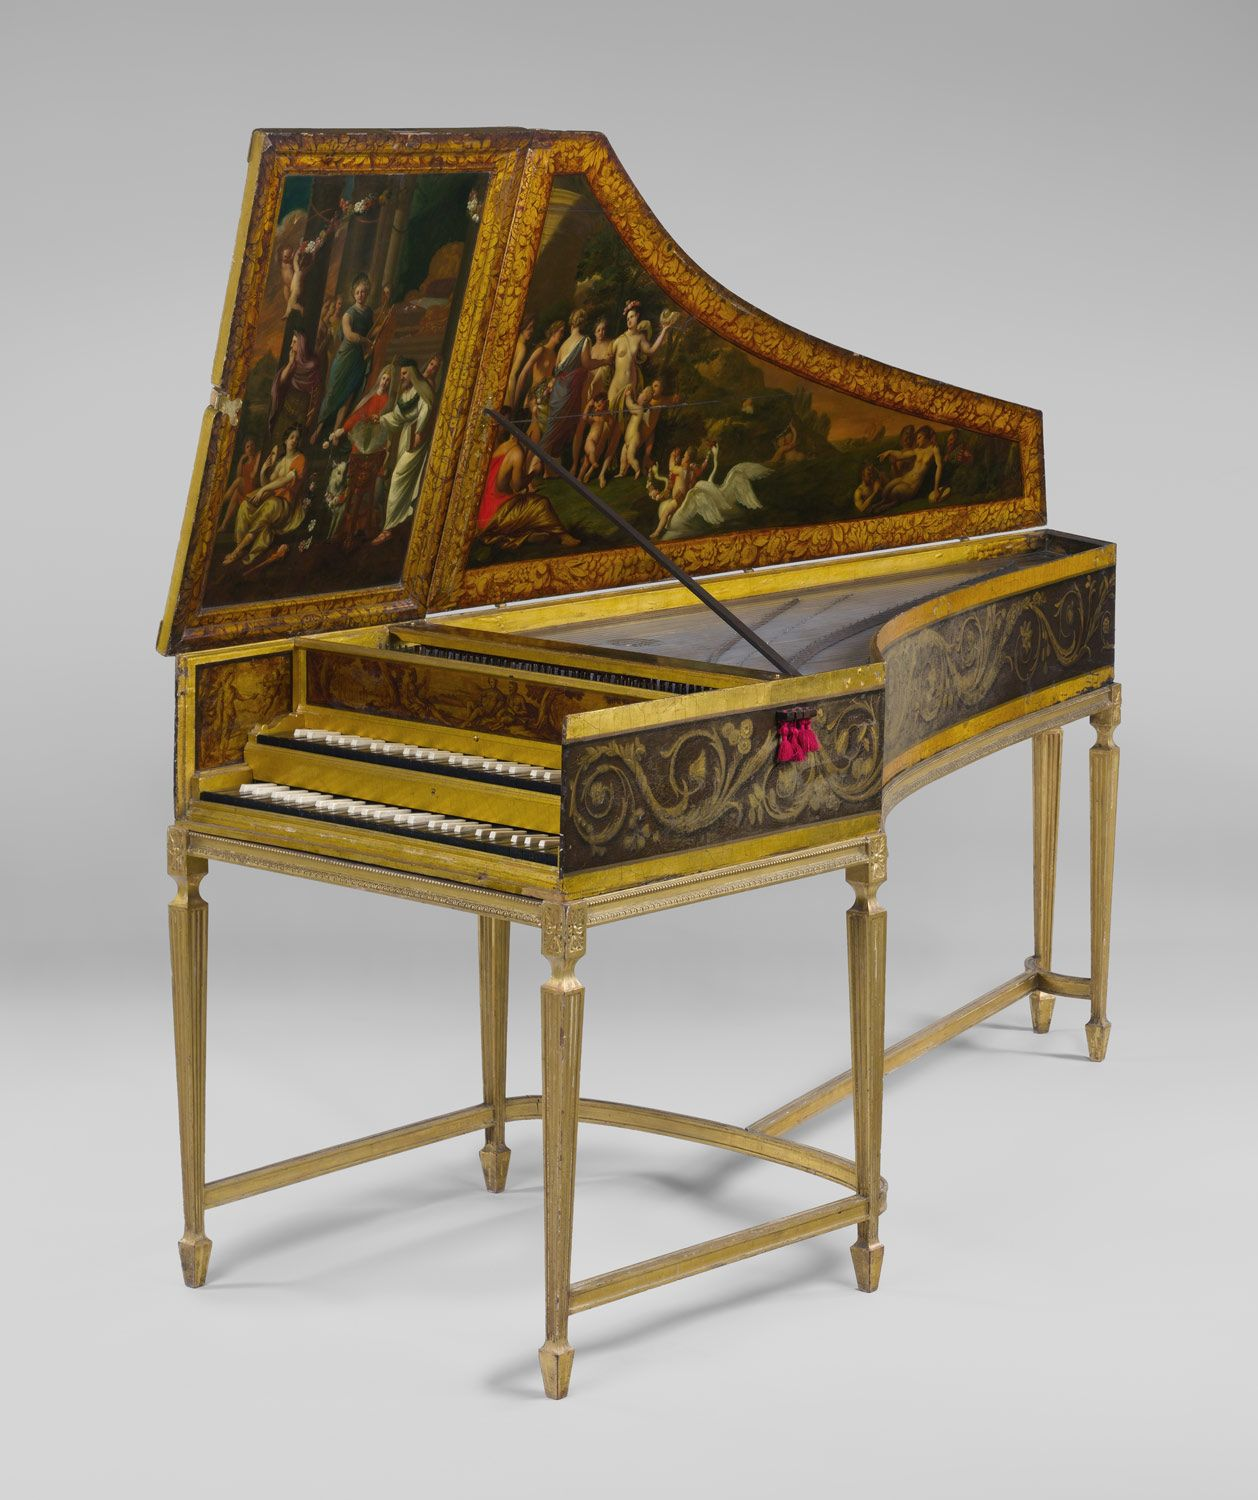 Flemish Harpsichords and Virginals in 2020 | Musical ...